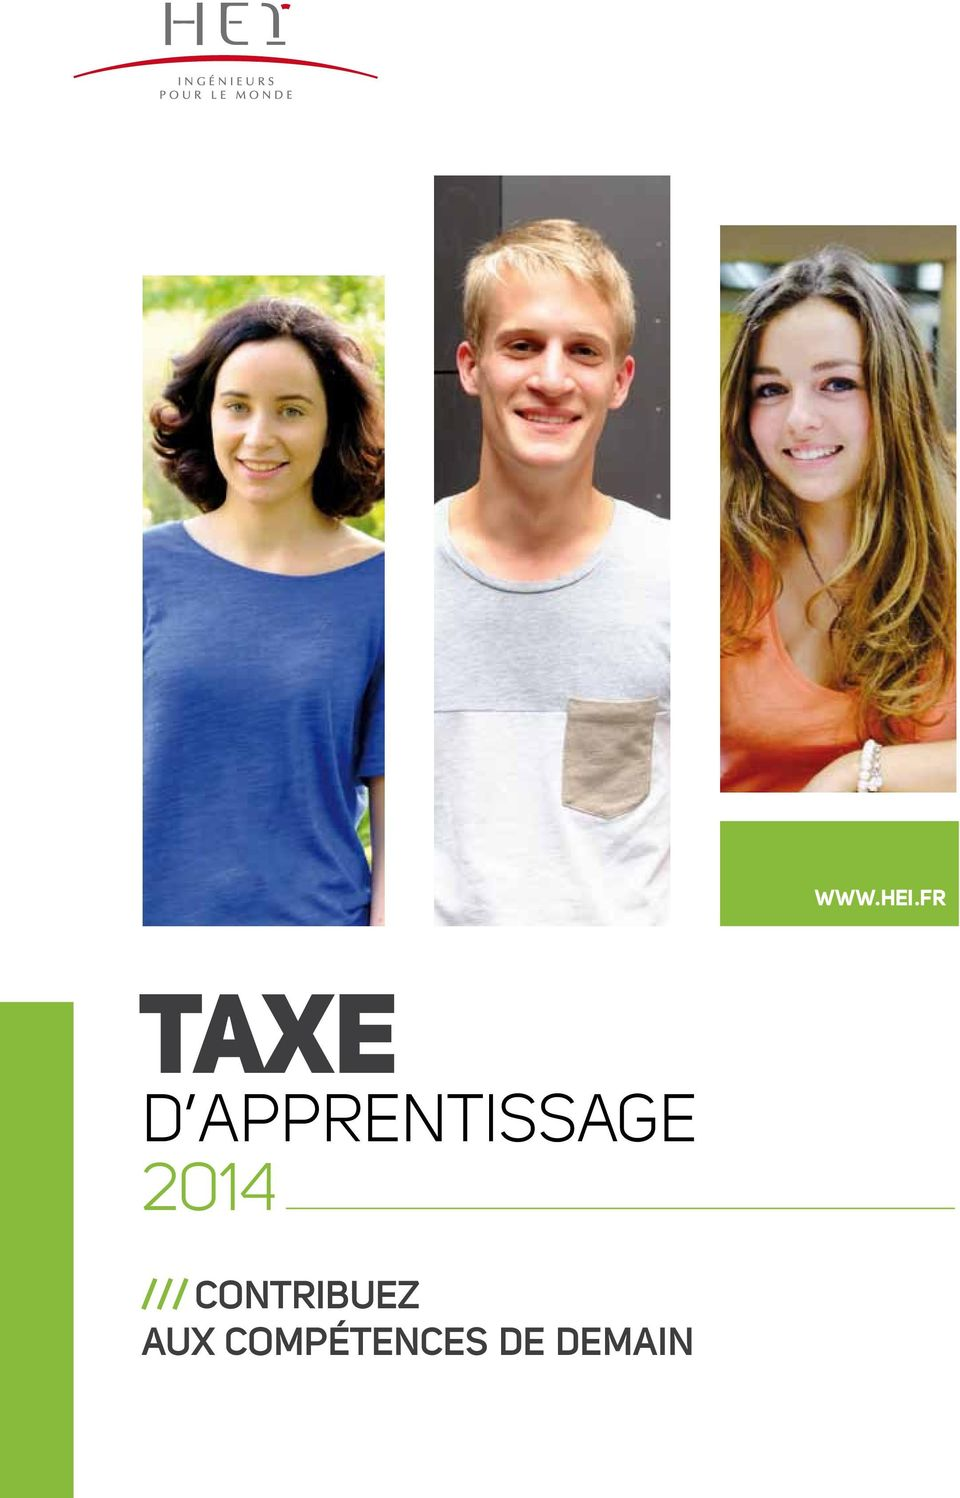 APPRENTISSAGE 2014